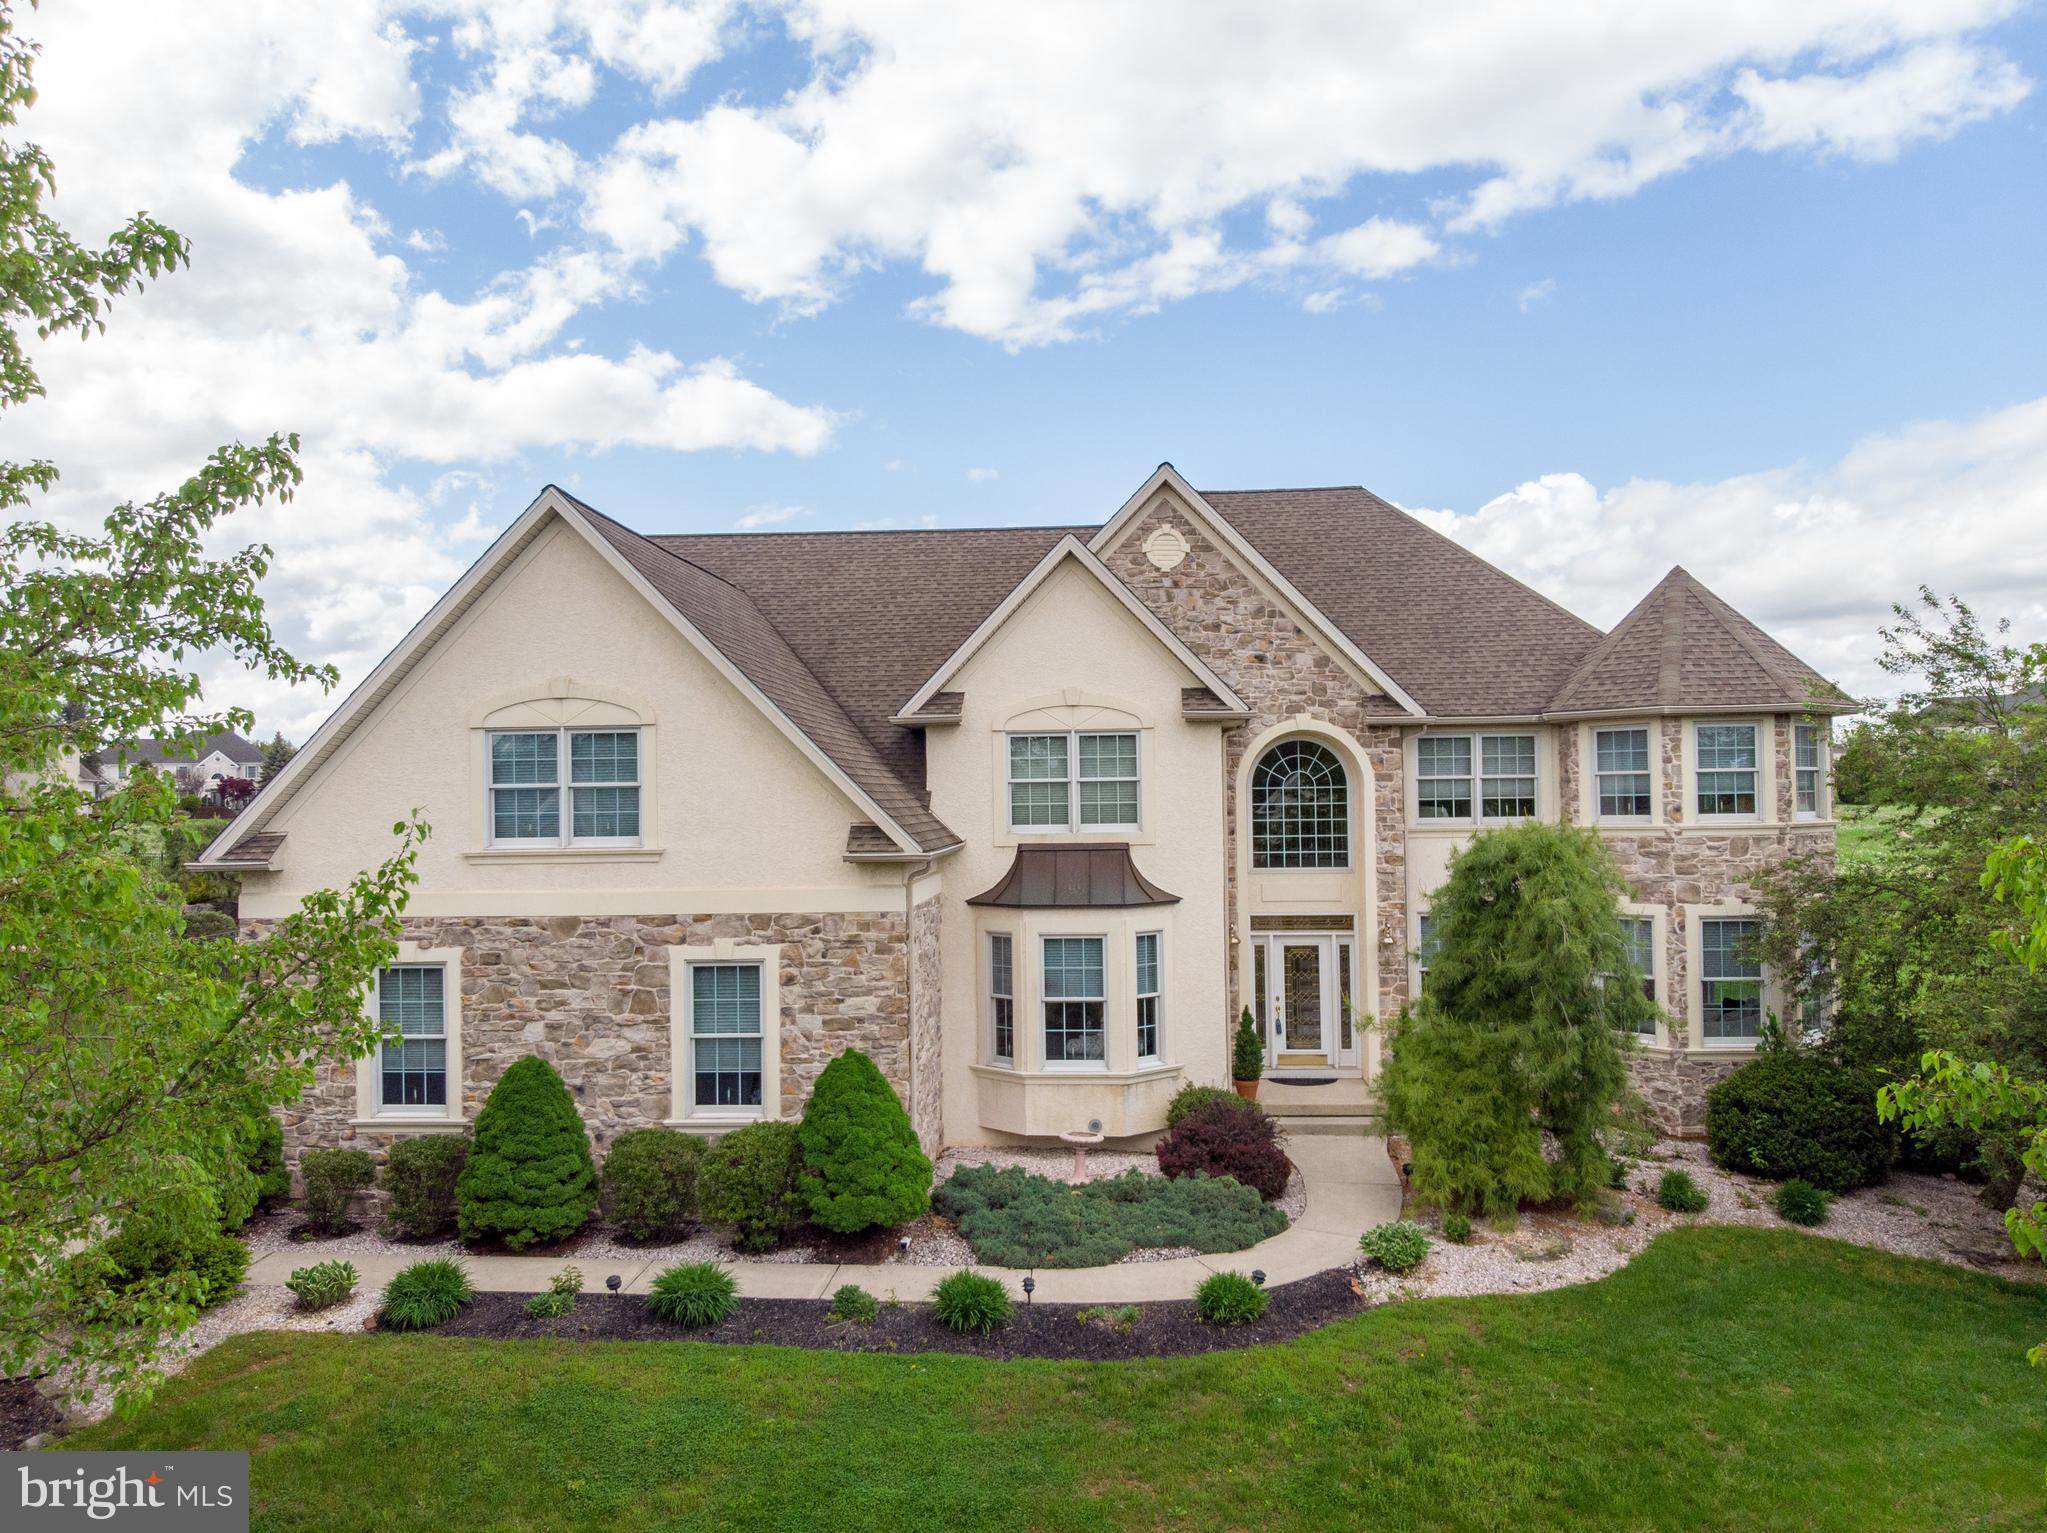 3141 OLD CARRIAGE DRIVE, EASTON, PA 18045